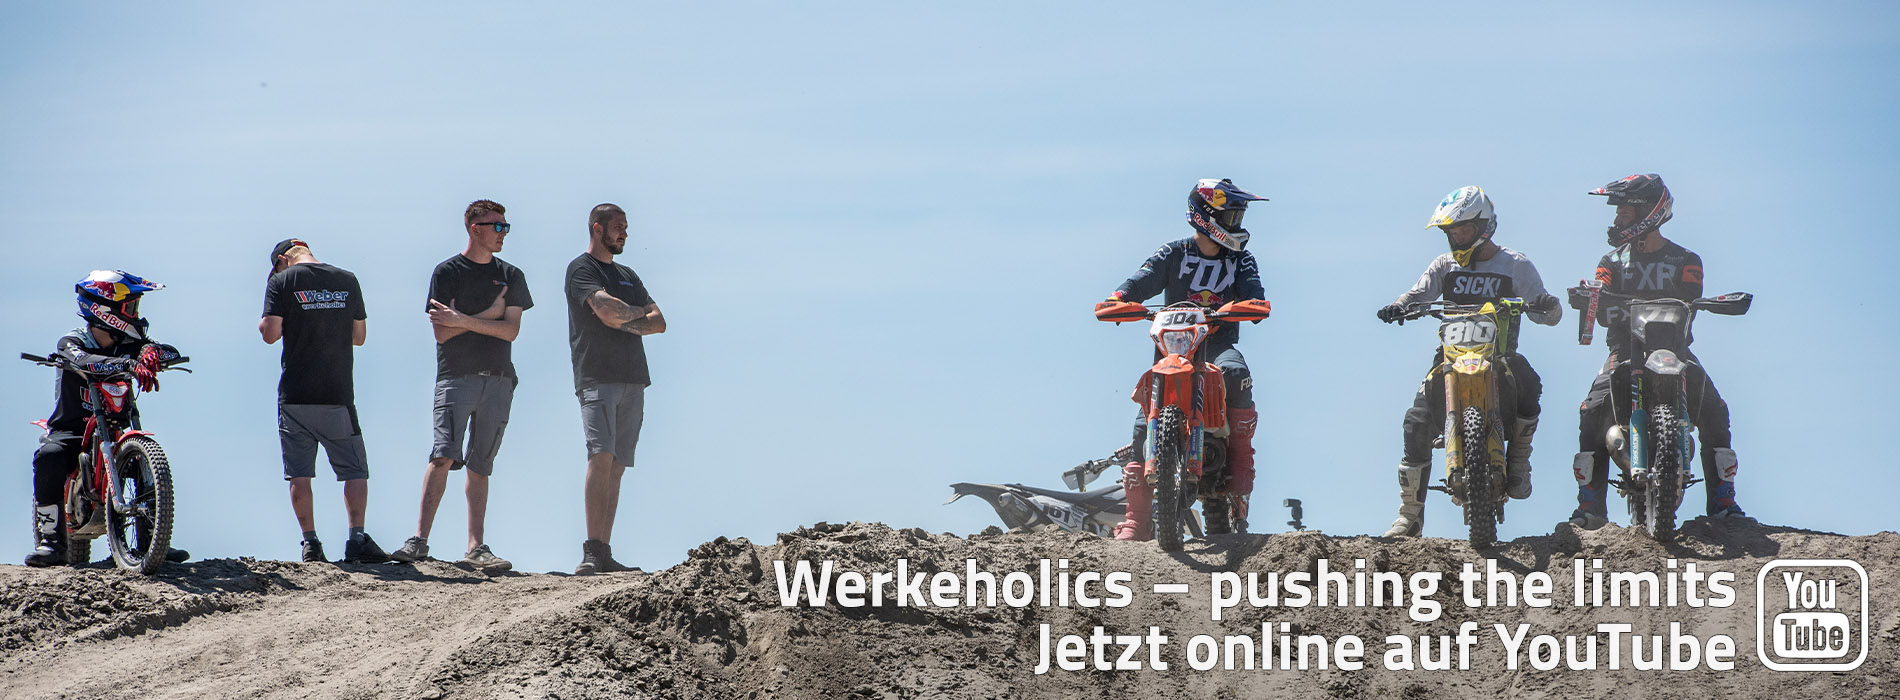 JETZT ONLINE! Werkeholics - puhsing the limits